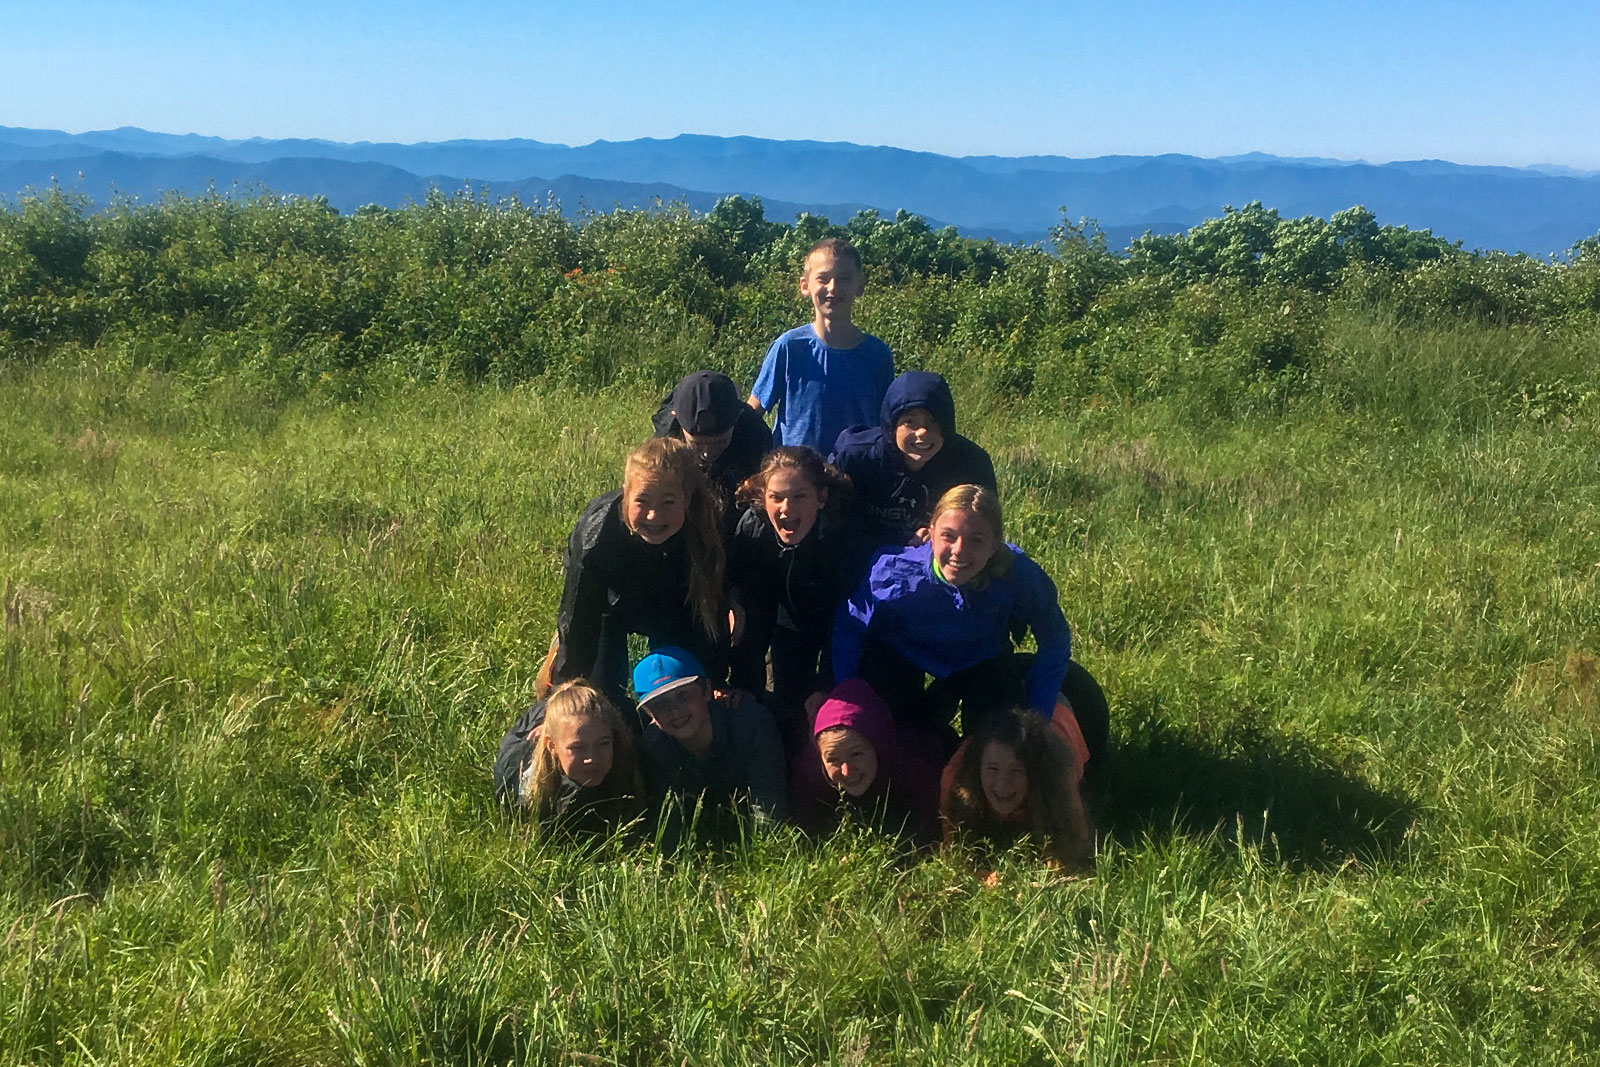 Campers build a human pyramid on top of a mountain